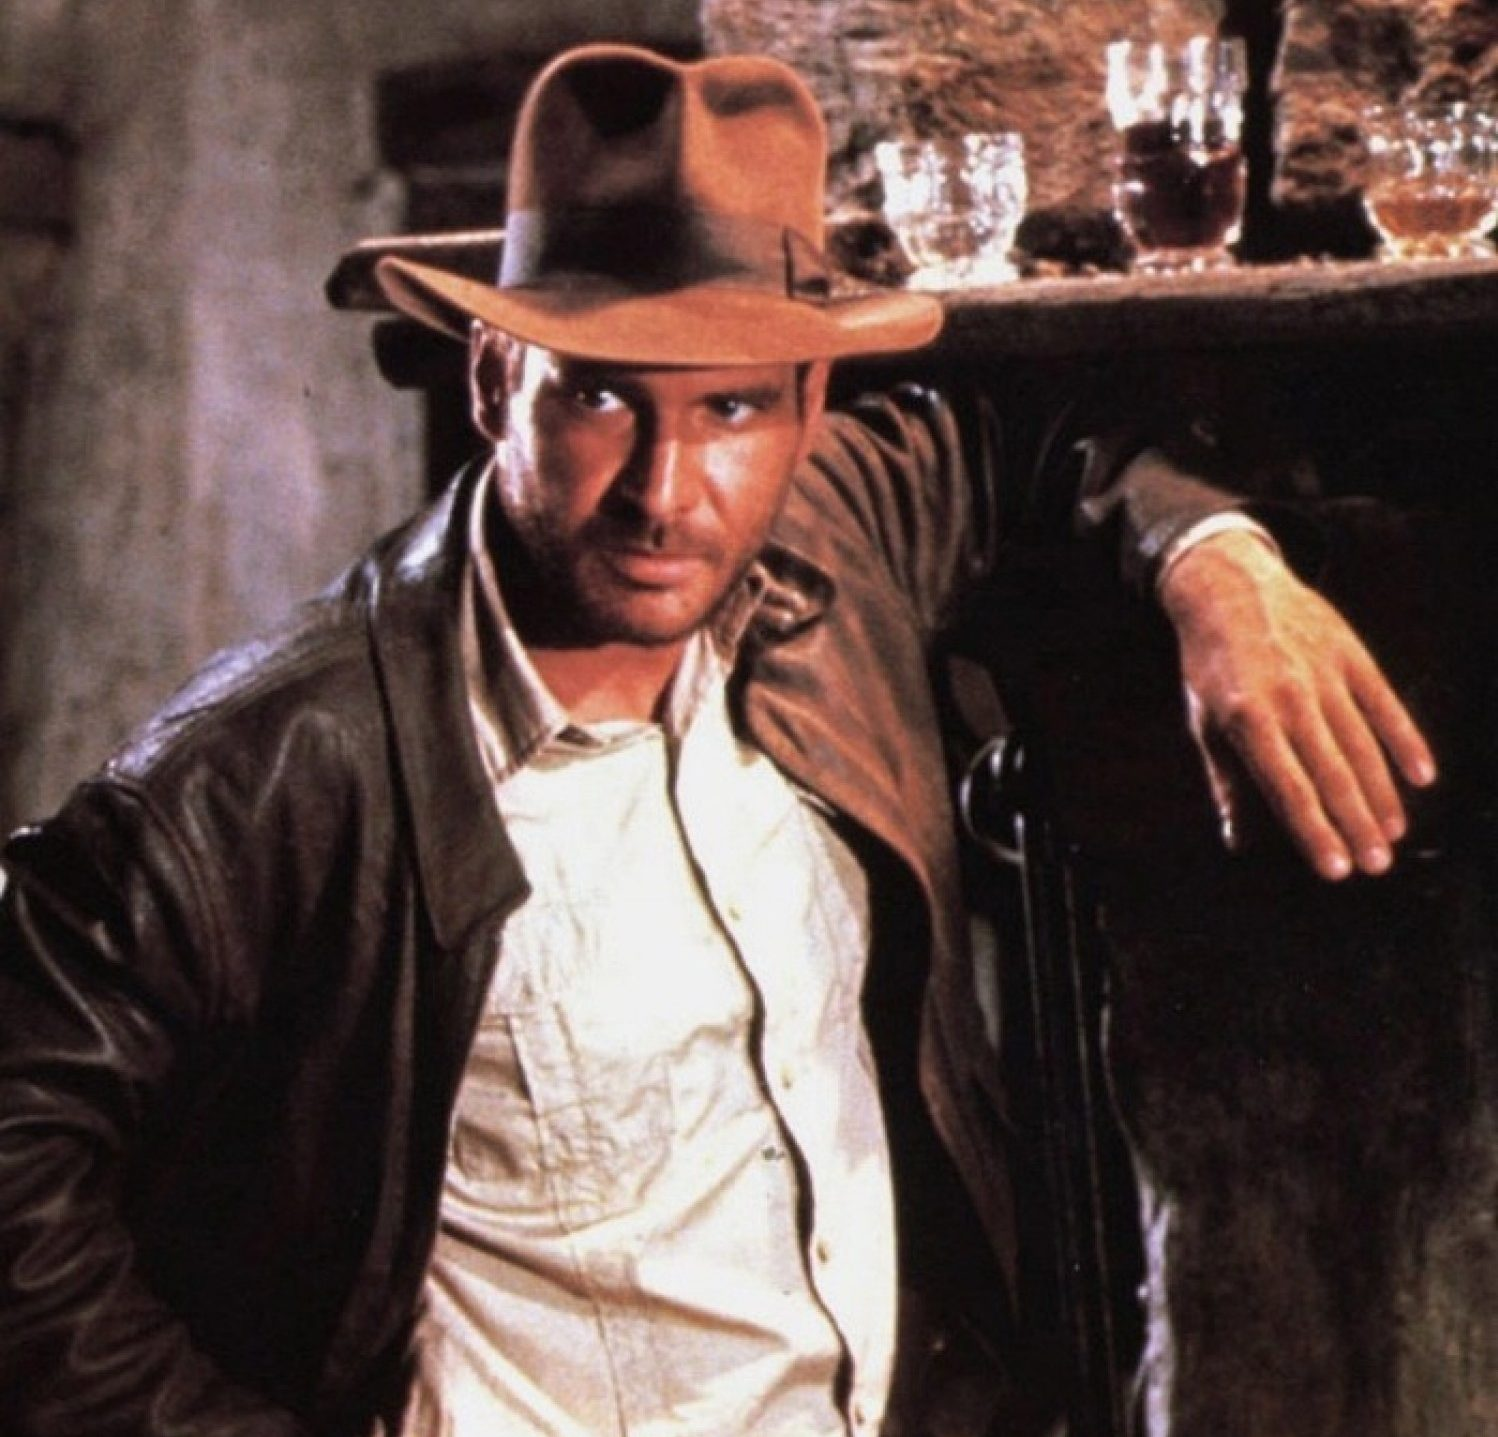 1 35 e1615455304564 20 Facts You Might Not Have Known About Indiana Jones and the Temple of Doom